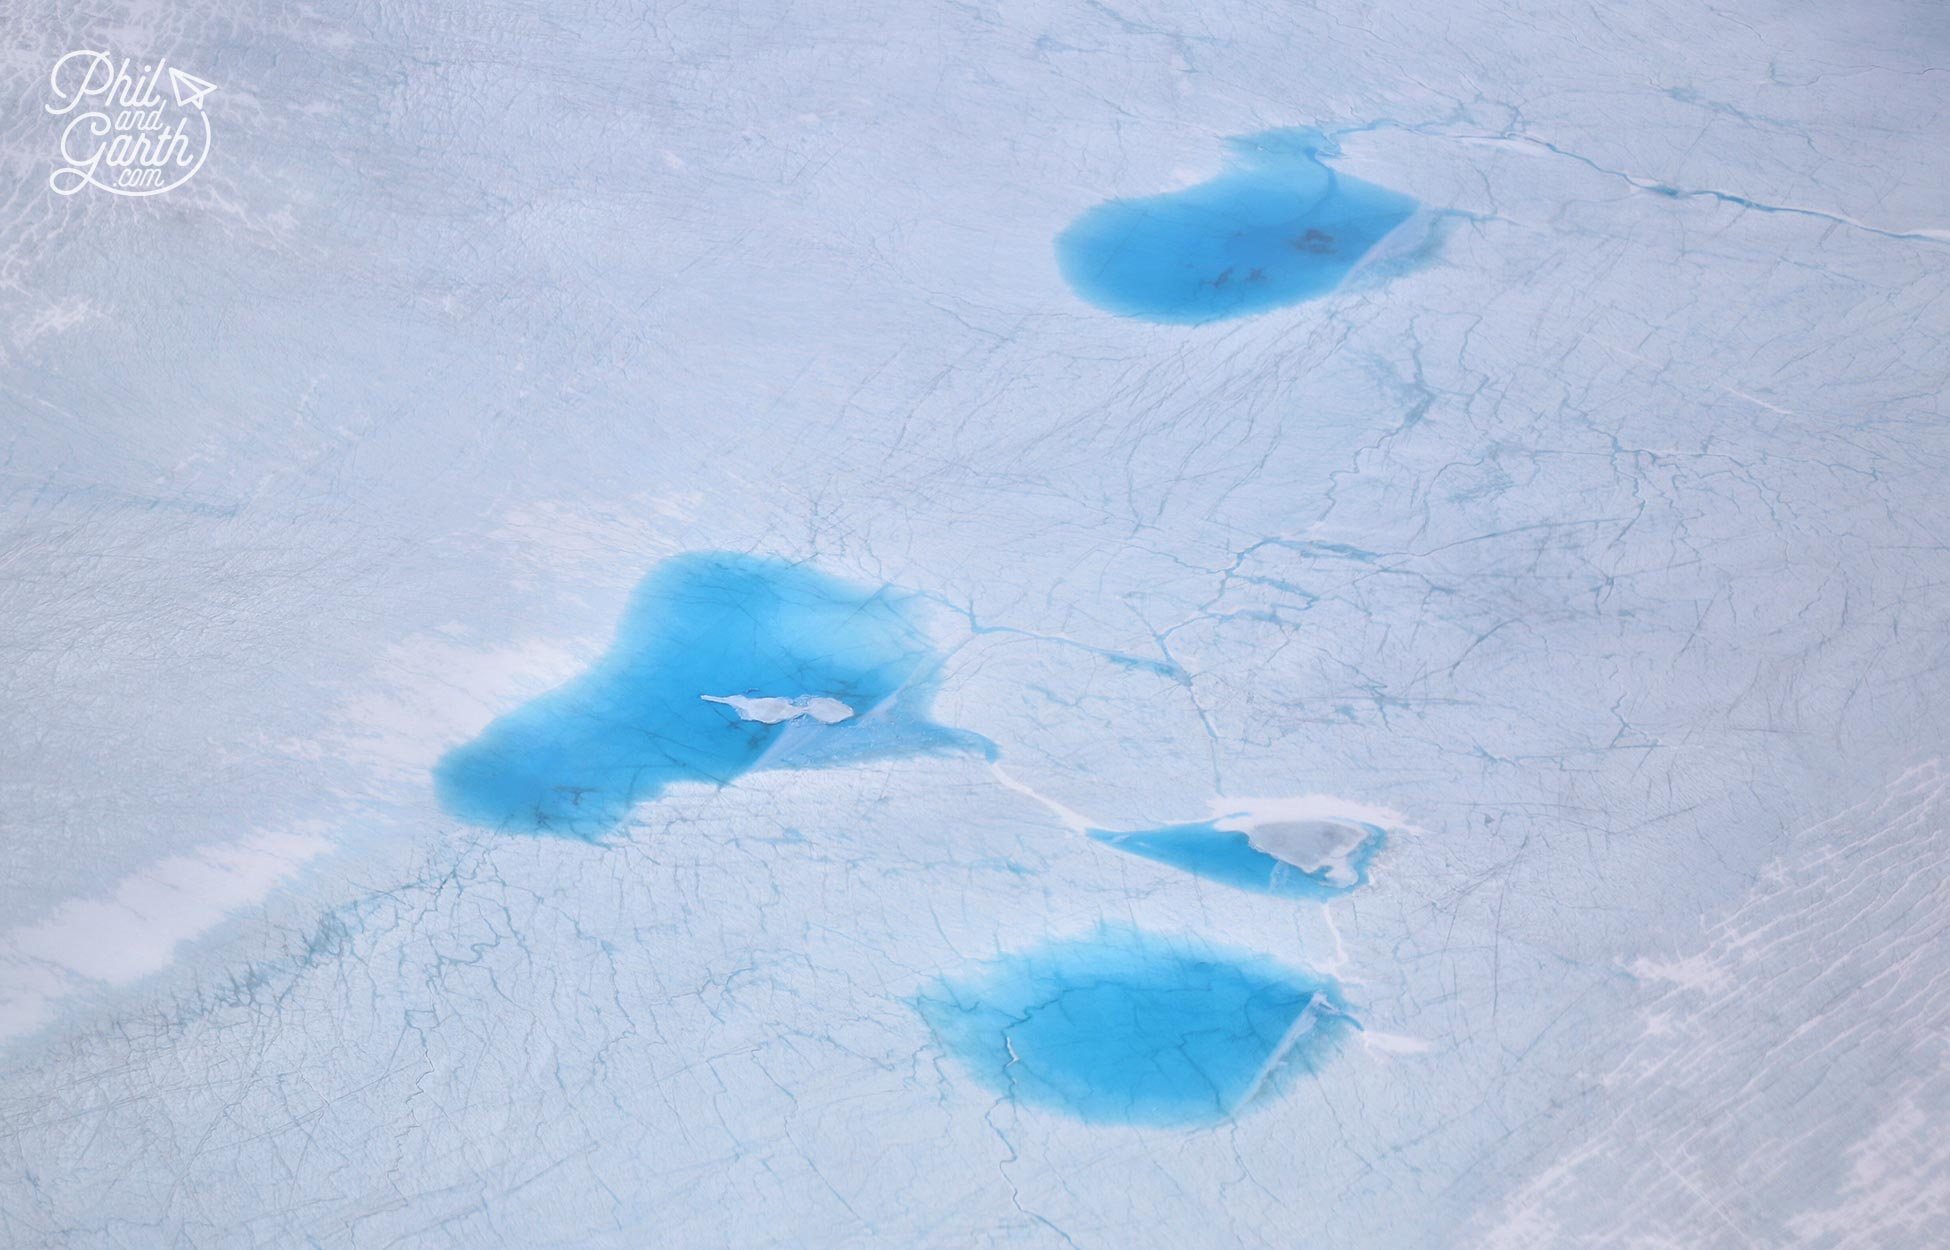 Meltwater lakes in Greenland - view from airplane